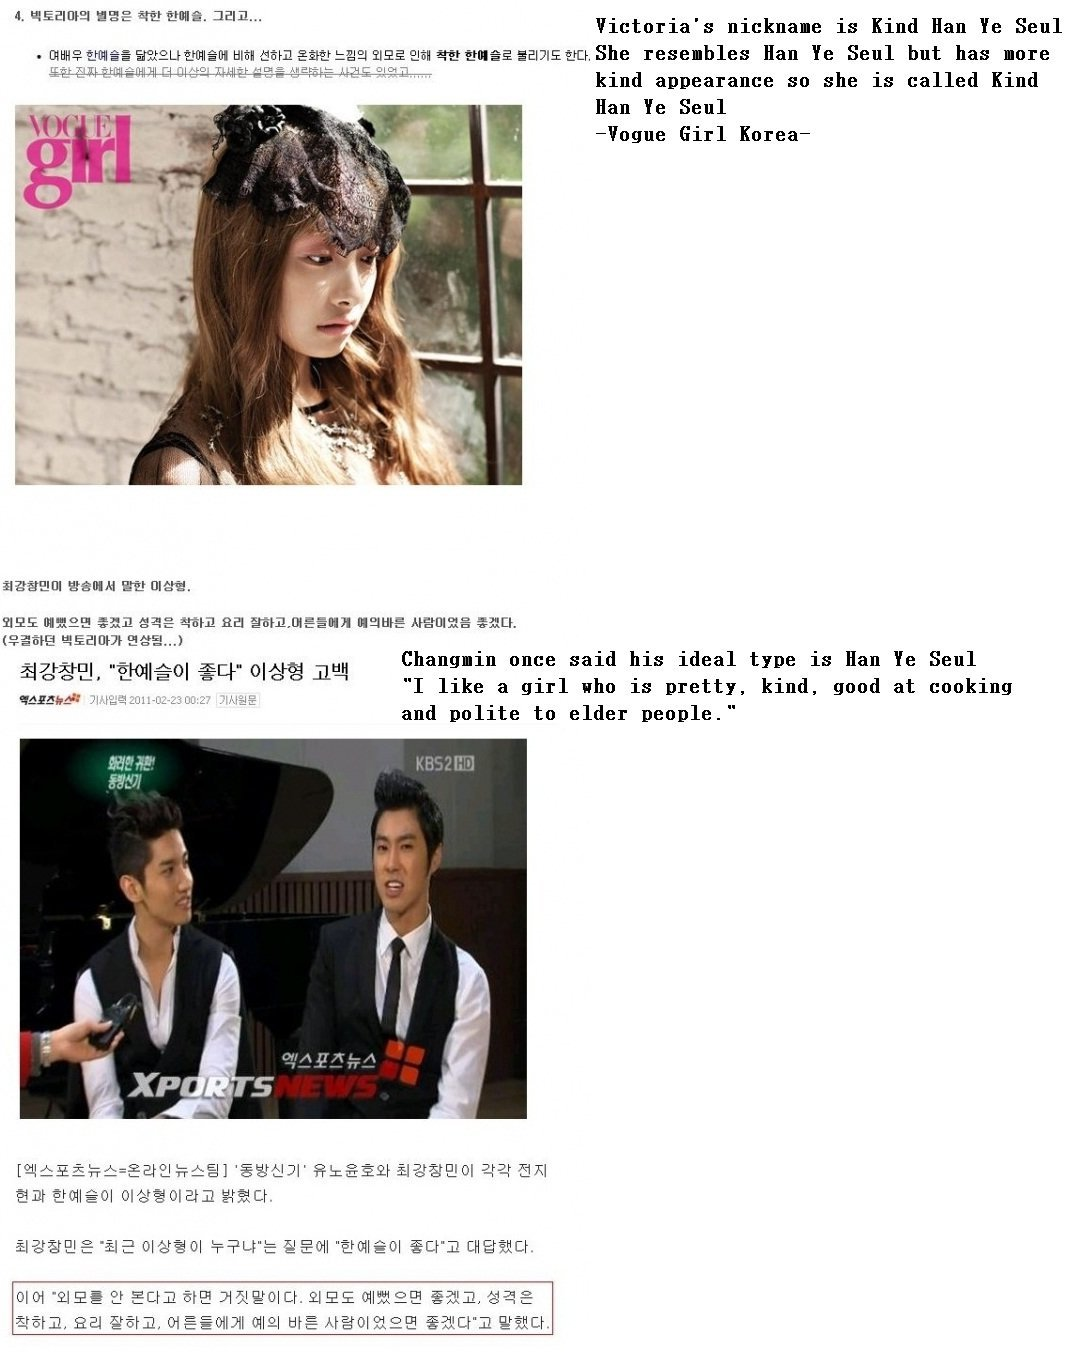 changmin and victoria dating allkpop forums